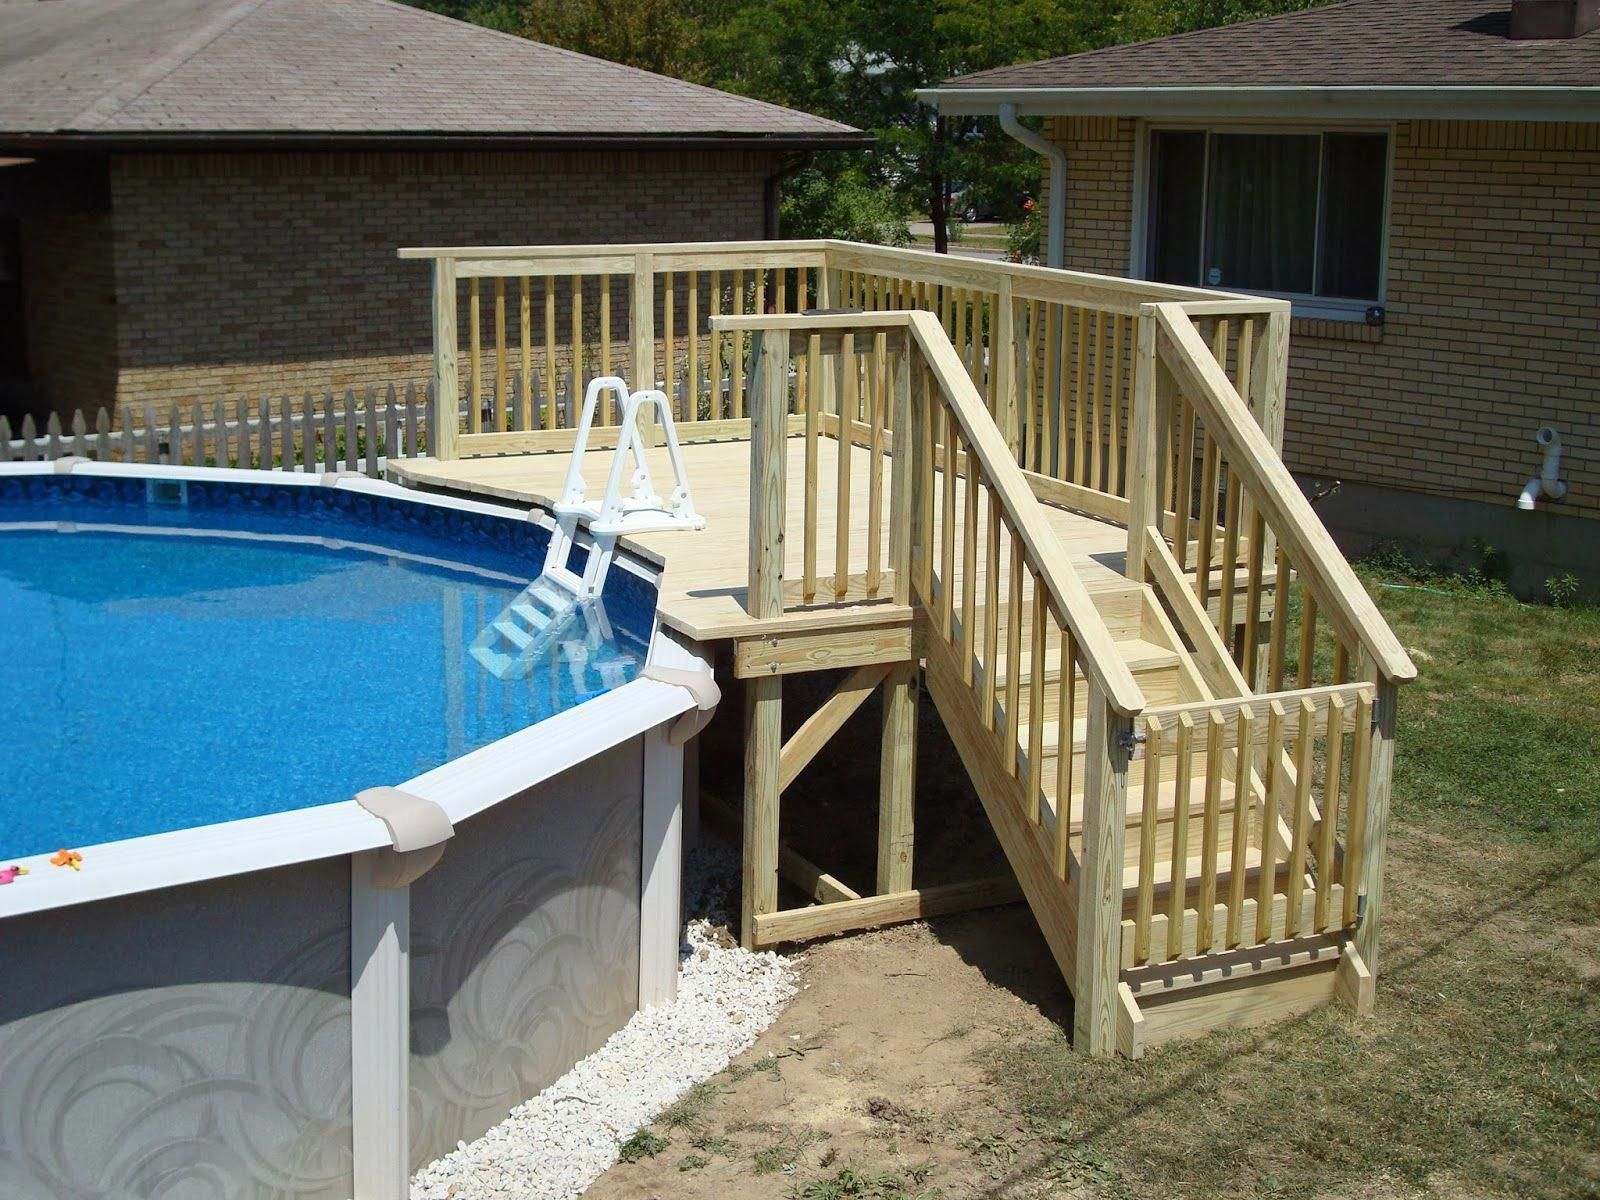 11 Most Popular Above Ground Pools With Decks Awesome Pictures Small Backyard Pools Backyard Pool Swimming Pool Decks